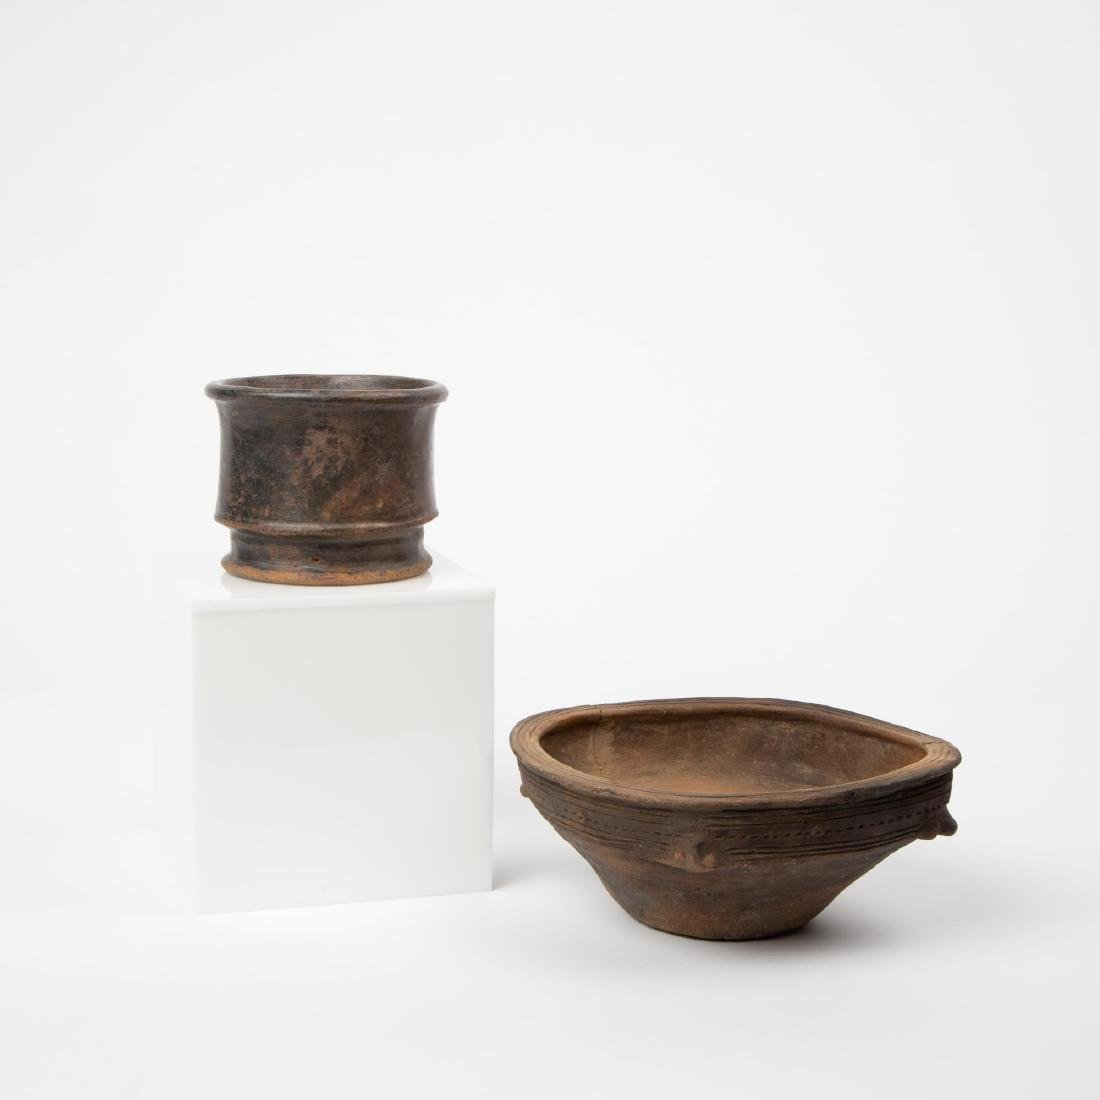 TWO TAIRONA CULTURE BLACKWARE POTTERY PIECES